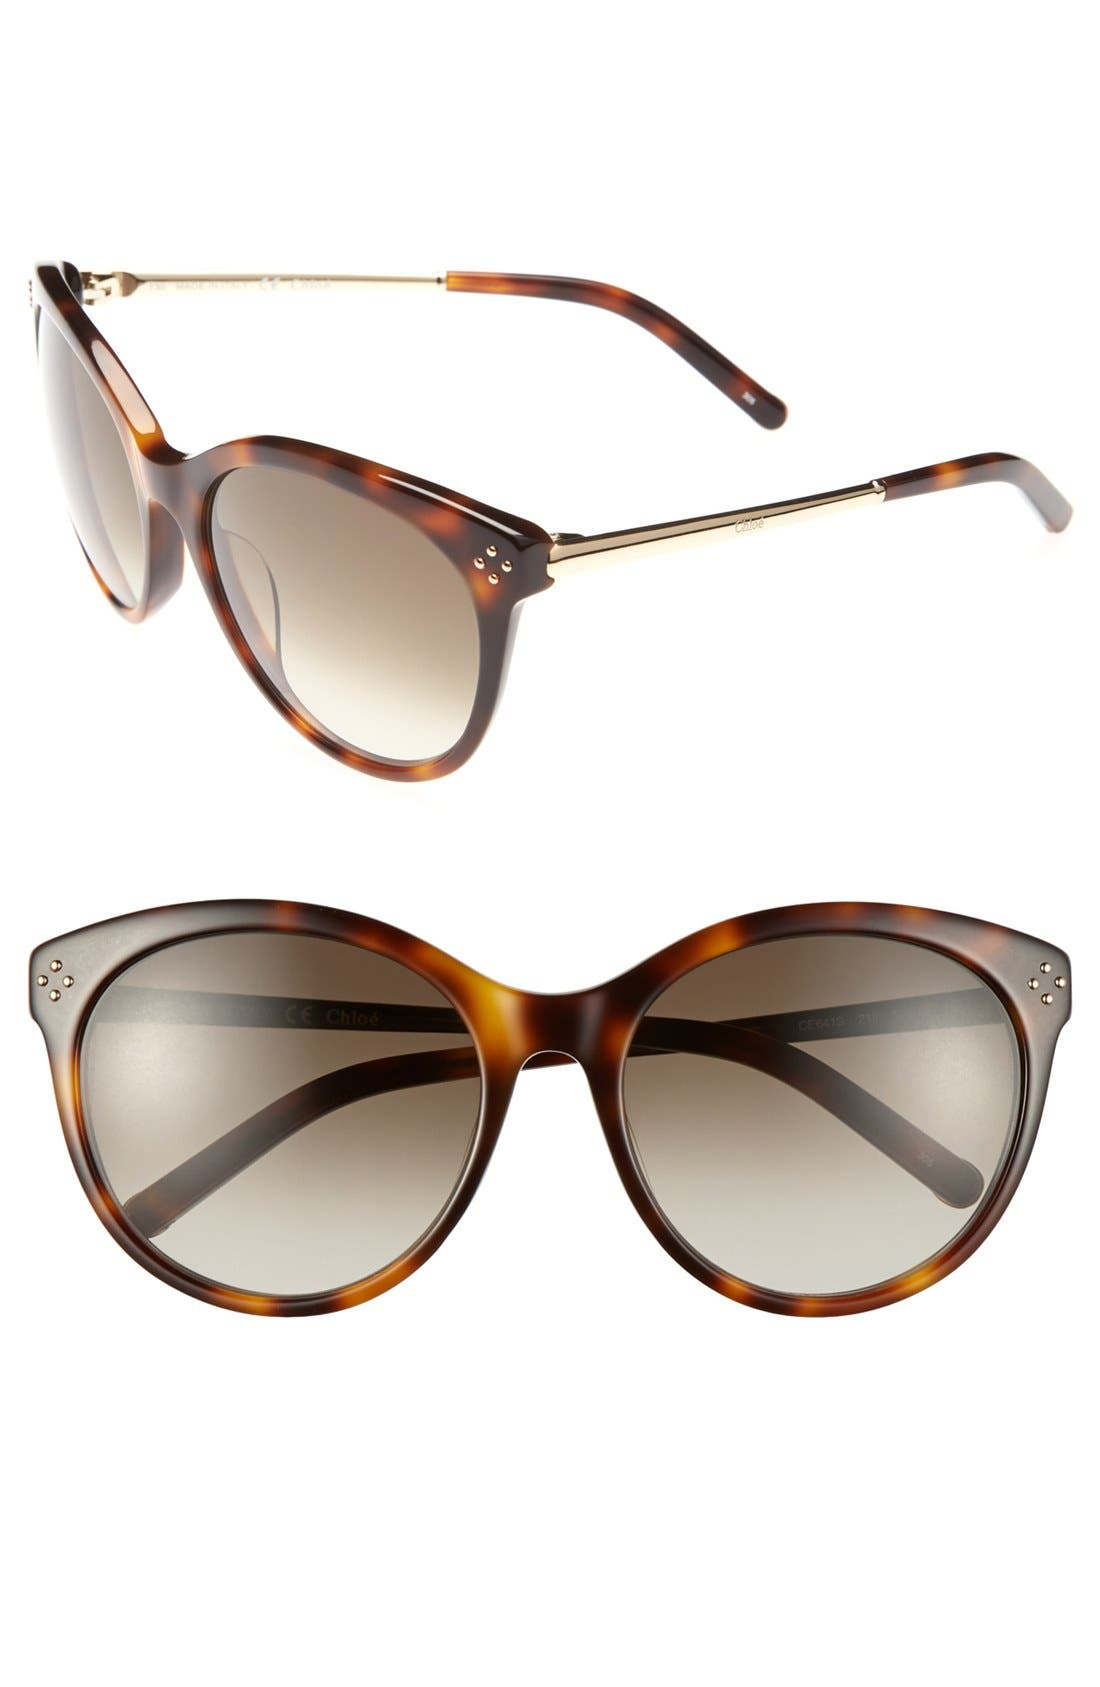 Main Image - Chloé 'Boxwood' 56mm Sunglasses